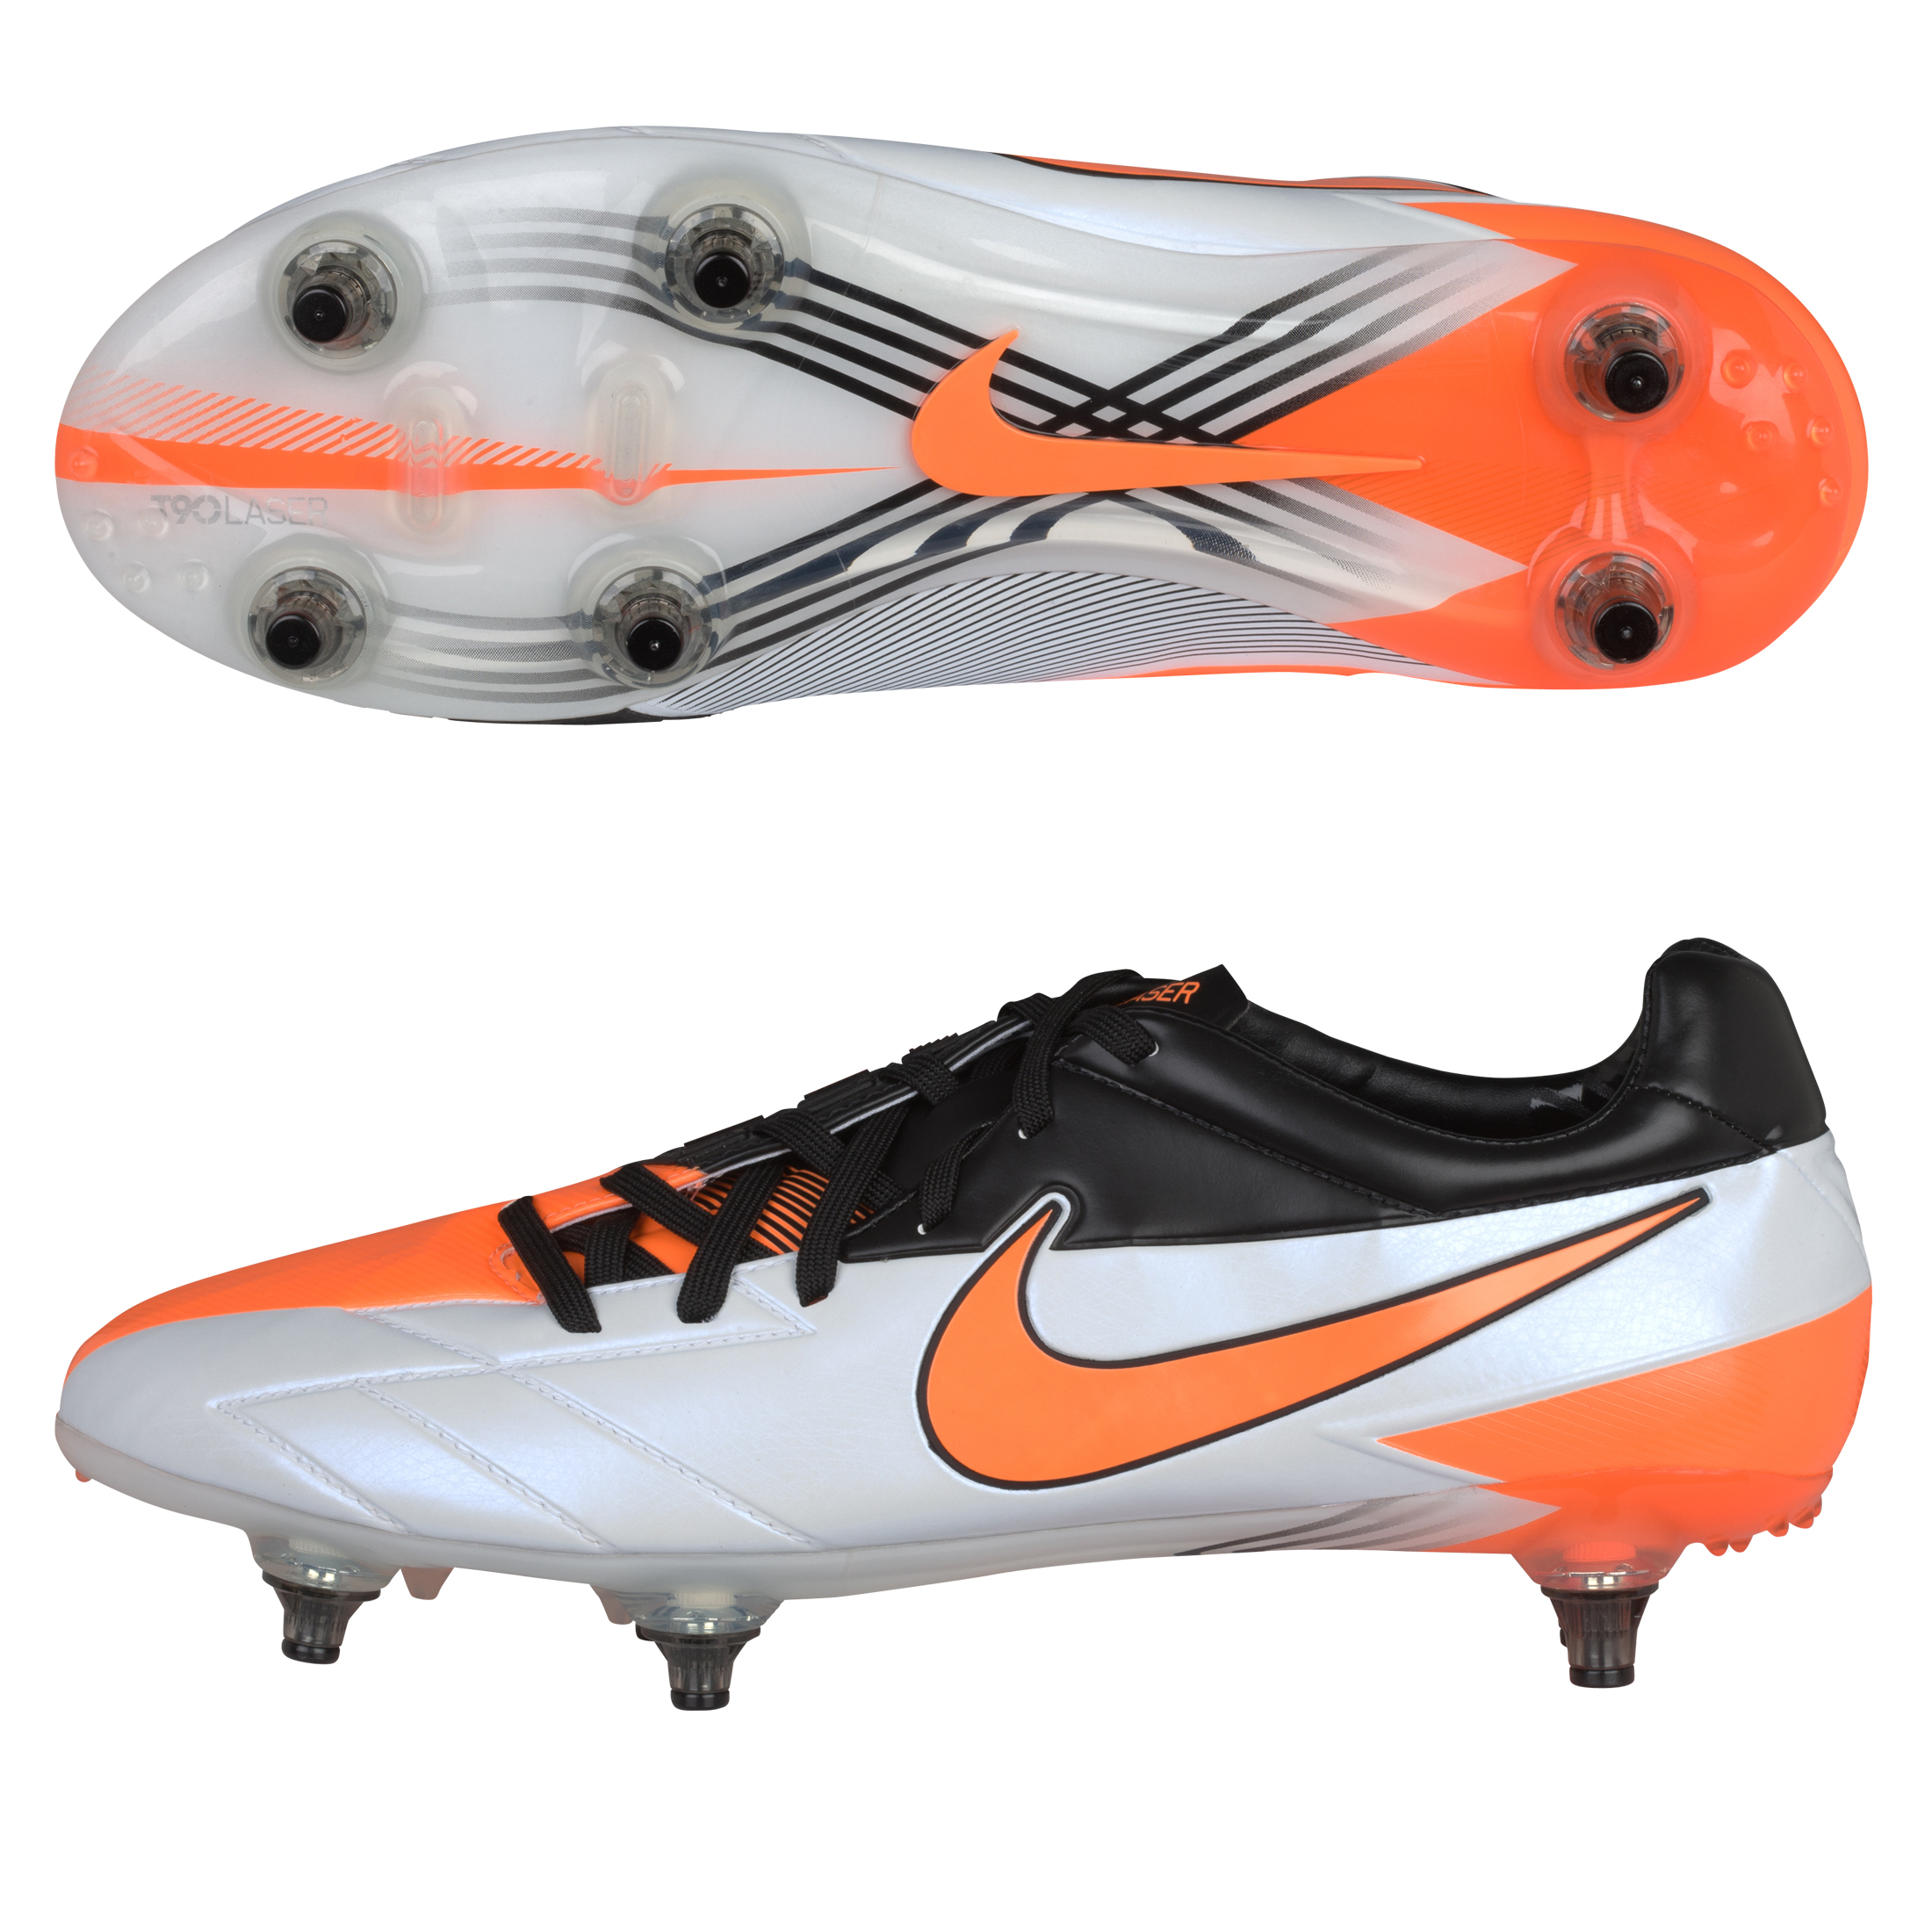 Nike Total90 Laser IV Soft Ground Football Boots - White/Total Orange/Black